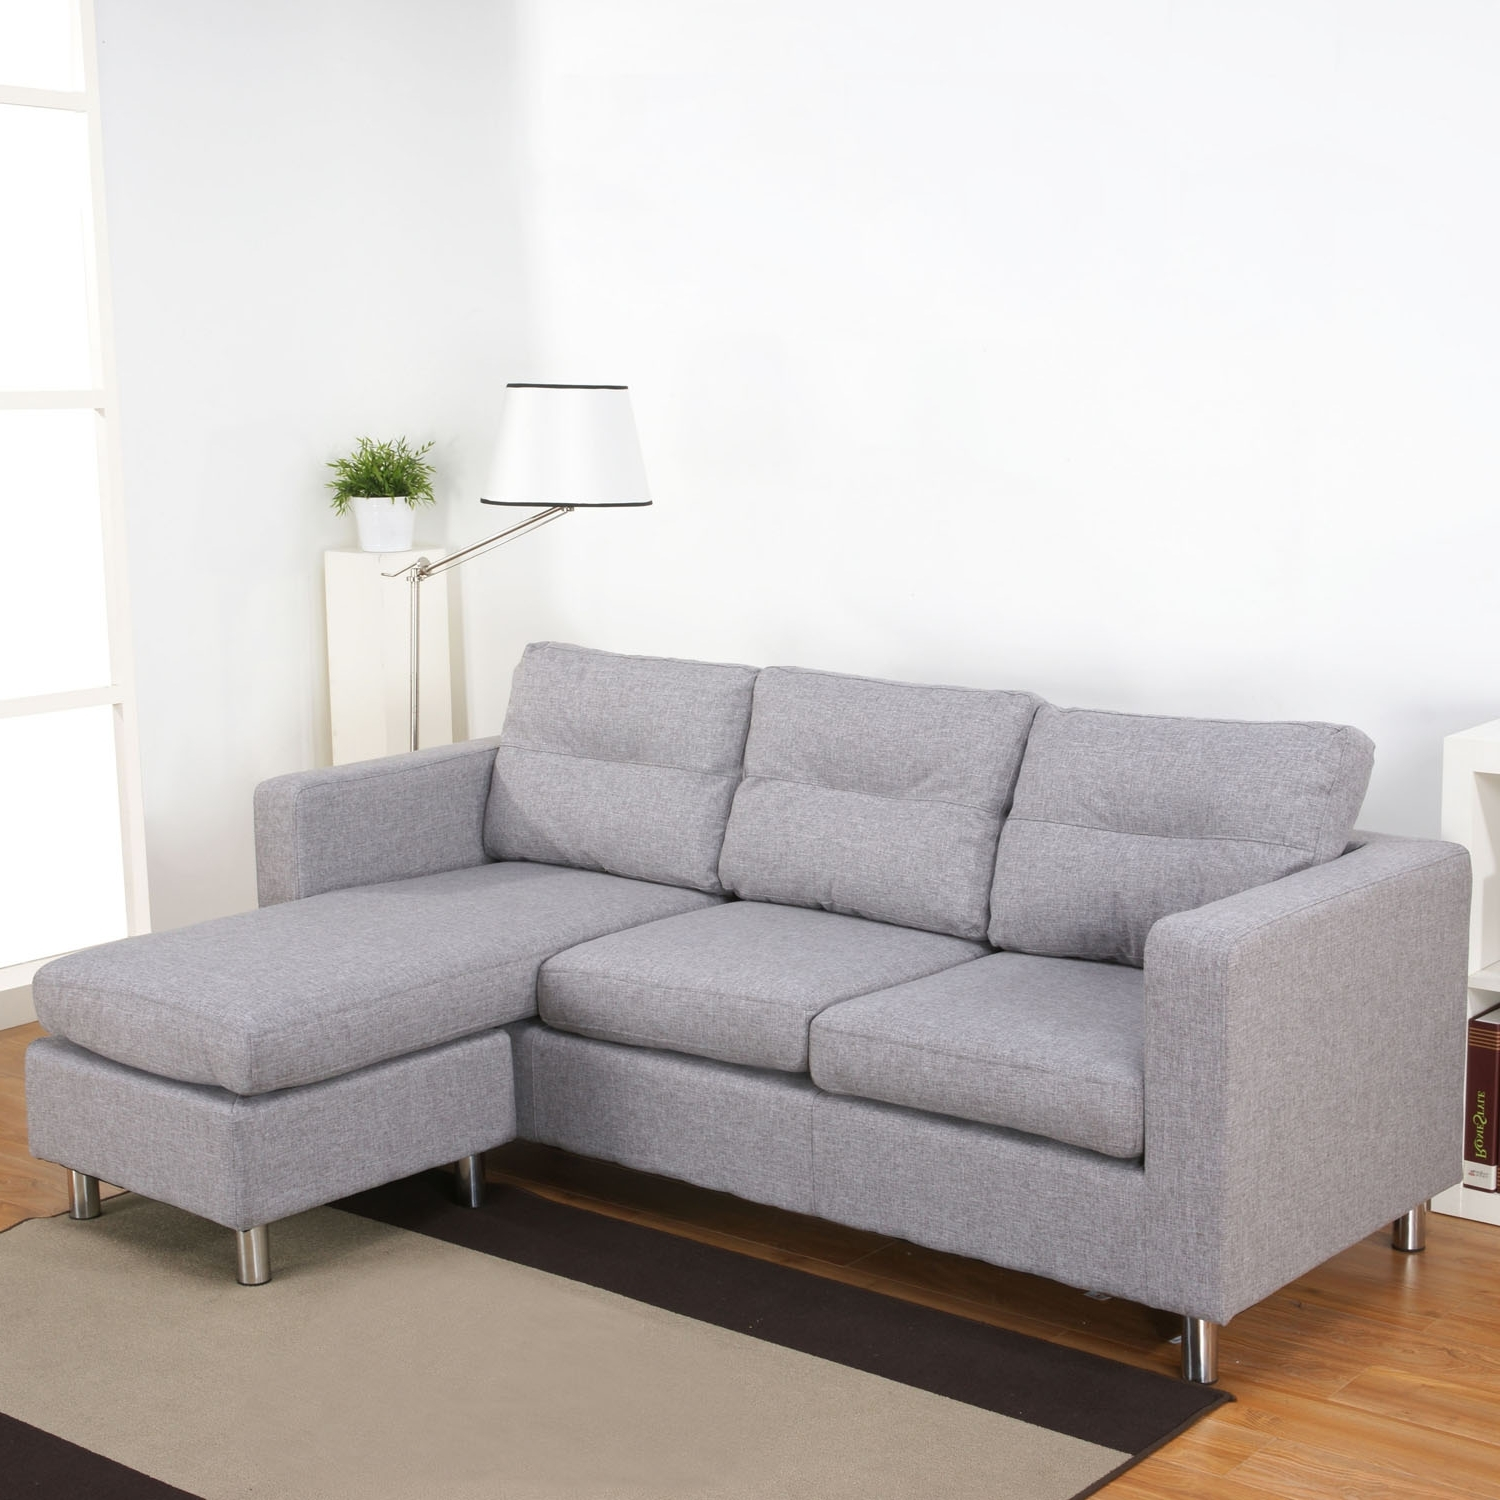 Gray Couches With Chaise For Popular Gray Sectional Sofas With Chaise (View 4 of 15)